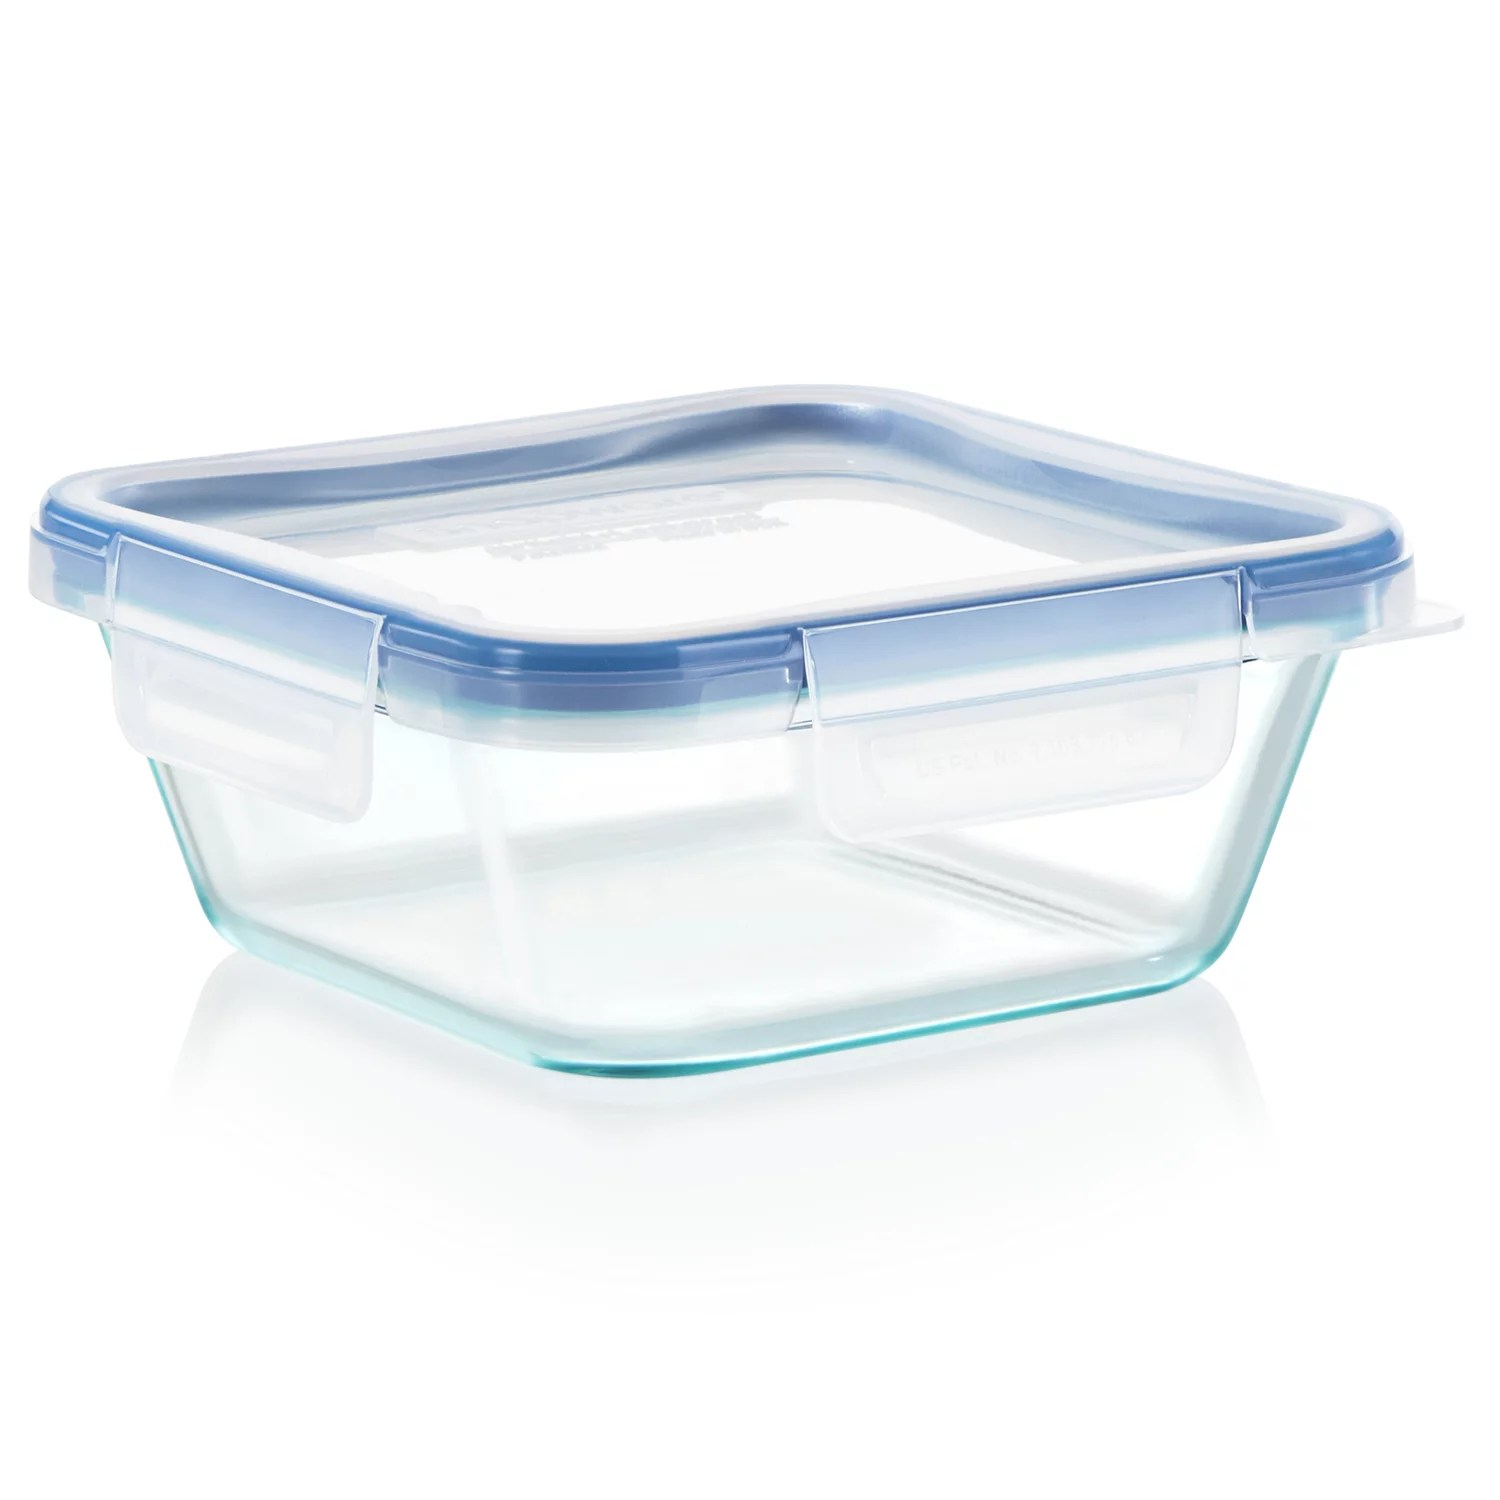 Snapware Total Solution Pyrex 4cup Covered Square Container